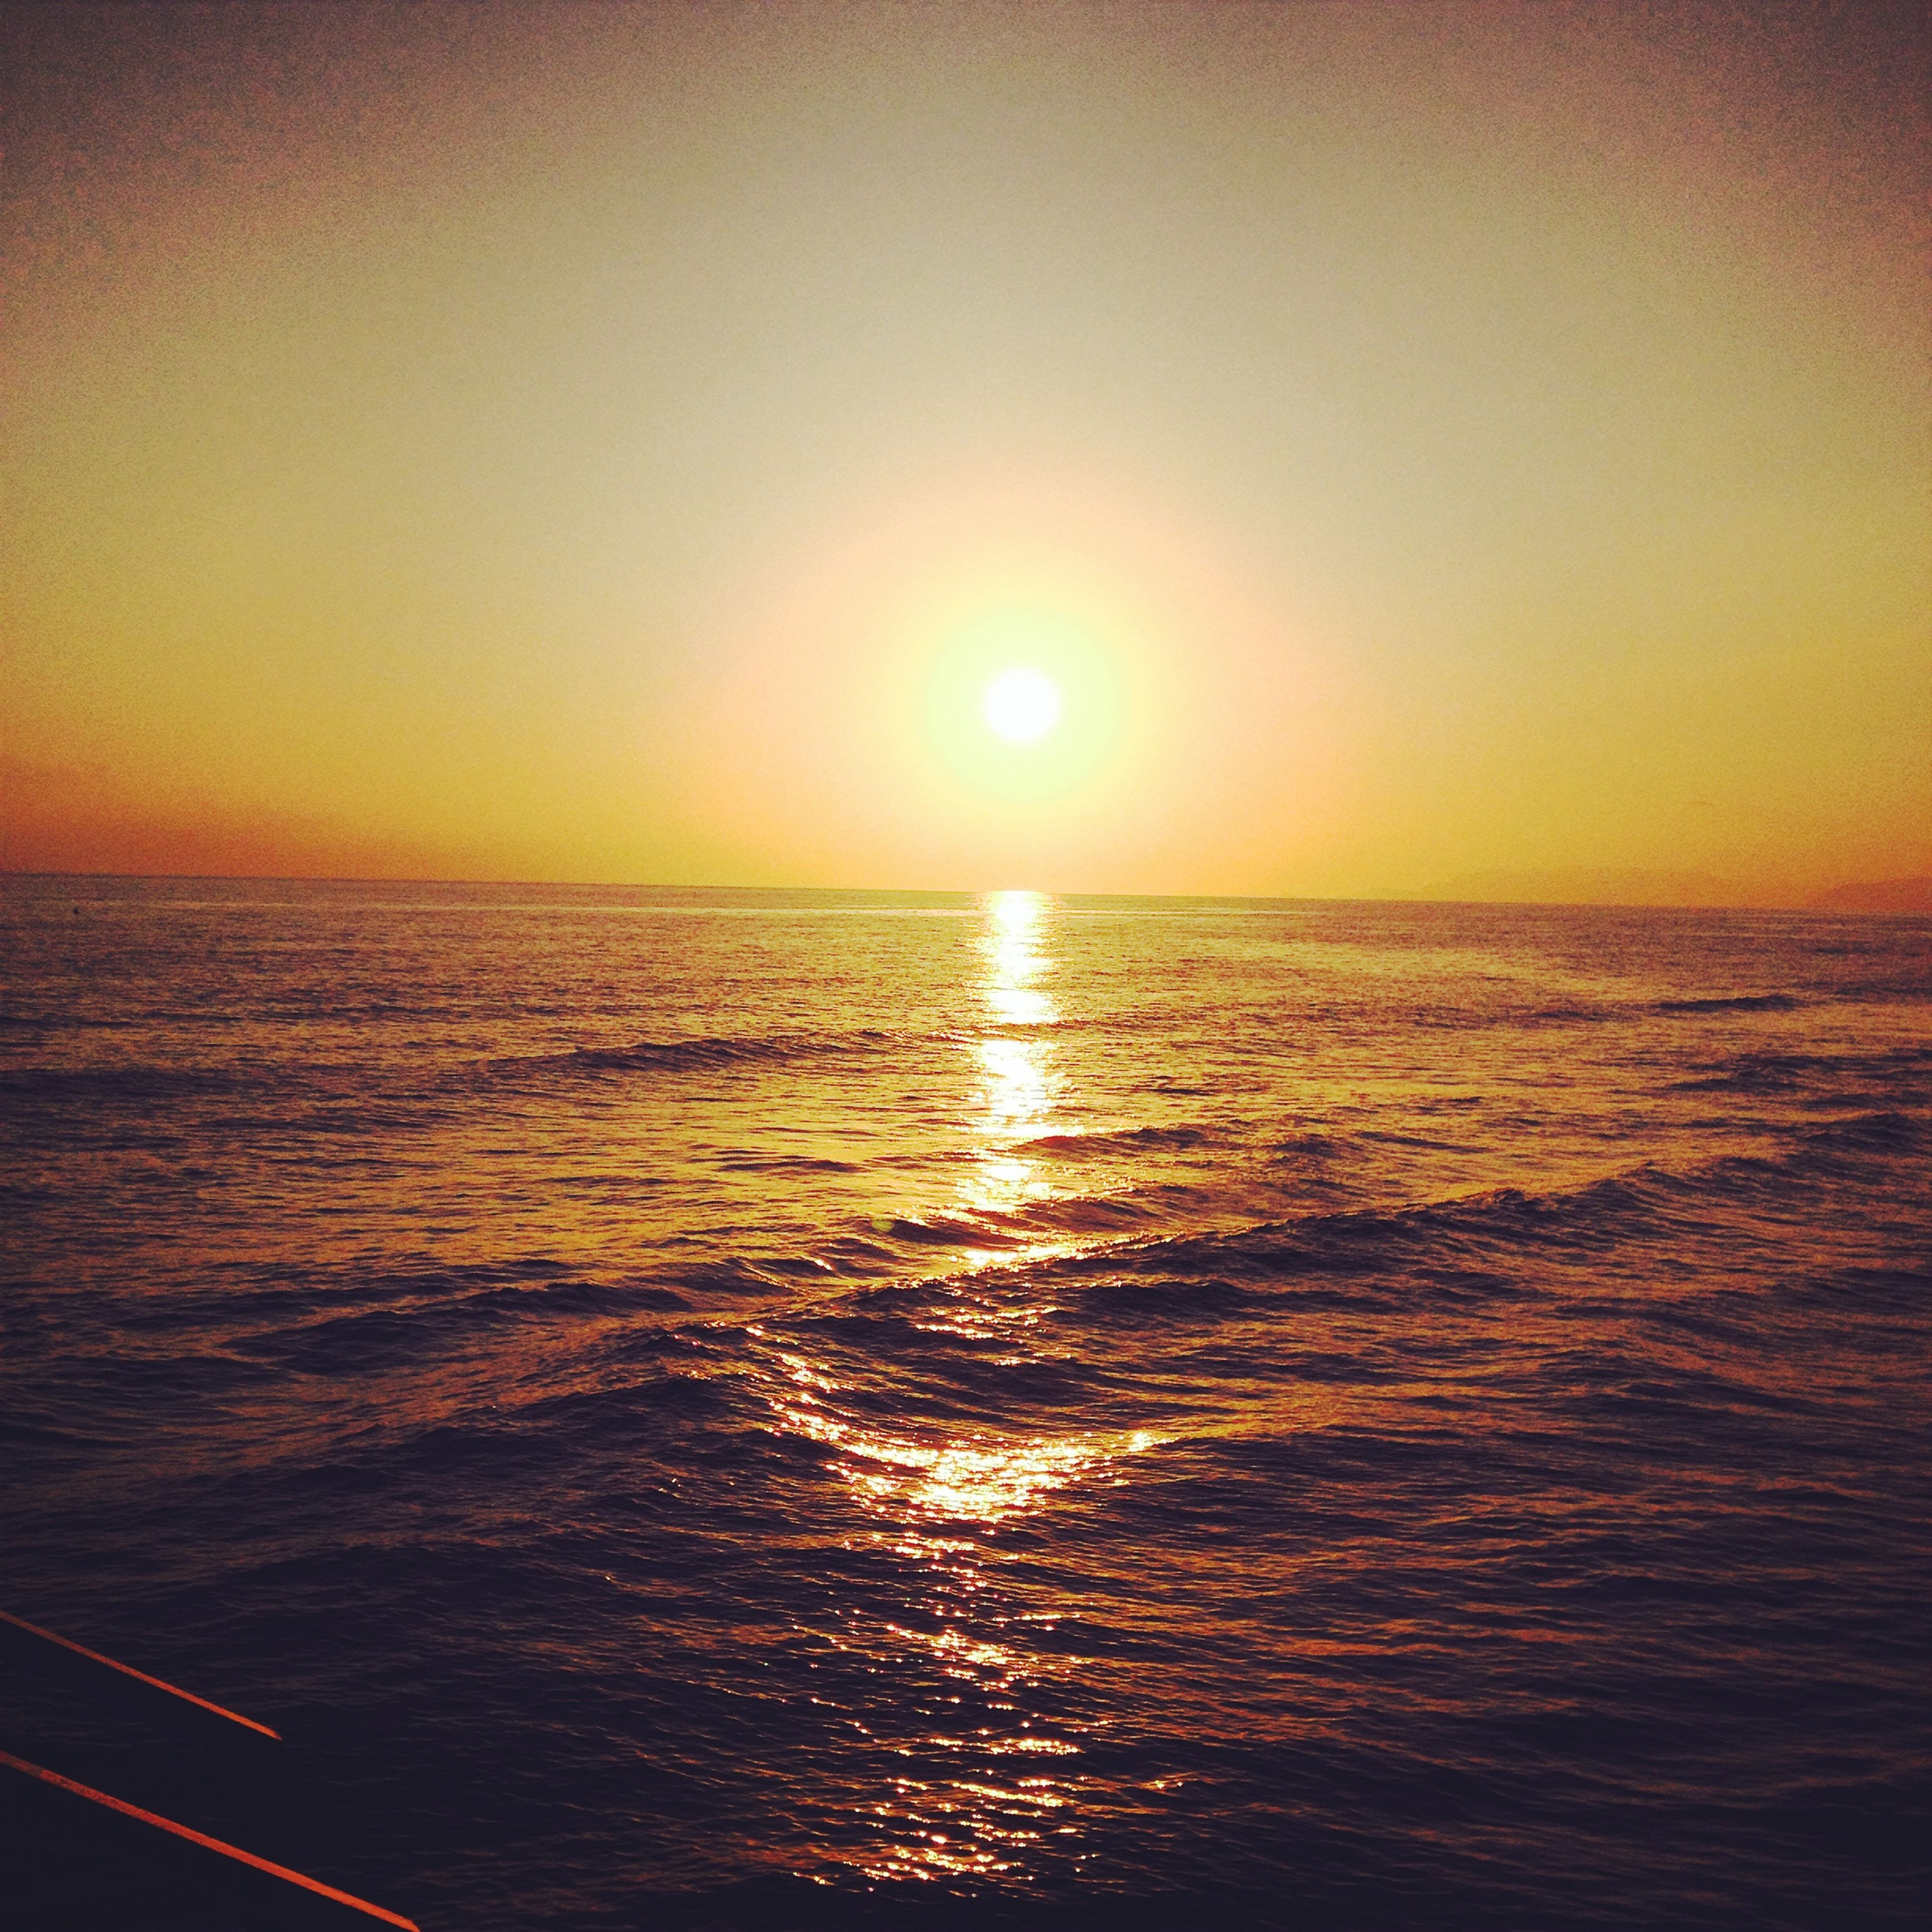 sunset, sea, sun, water, horizon over water, scenics, orange color, tranquil scene, beauty in nature, tranquility, reflection, idyllic, waterfront, nature, rippled, clear sky, sunlight, seascape, sky, nautical vessel